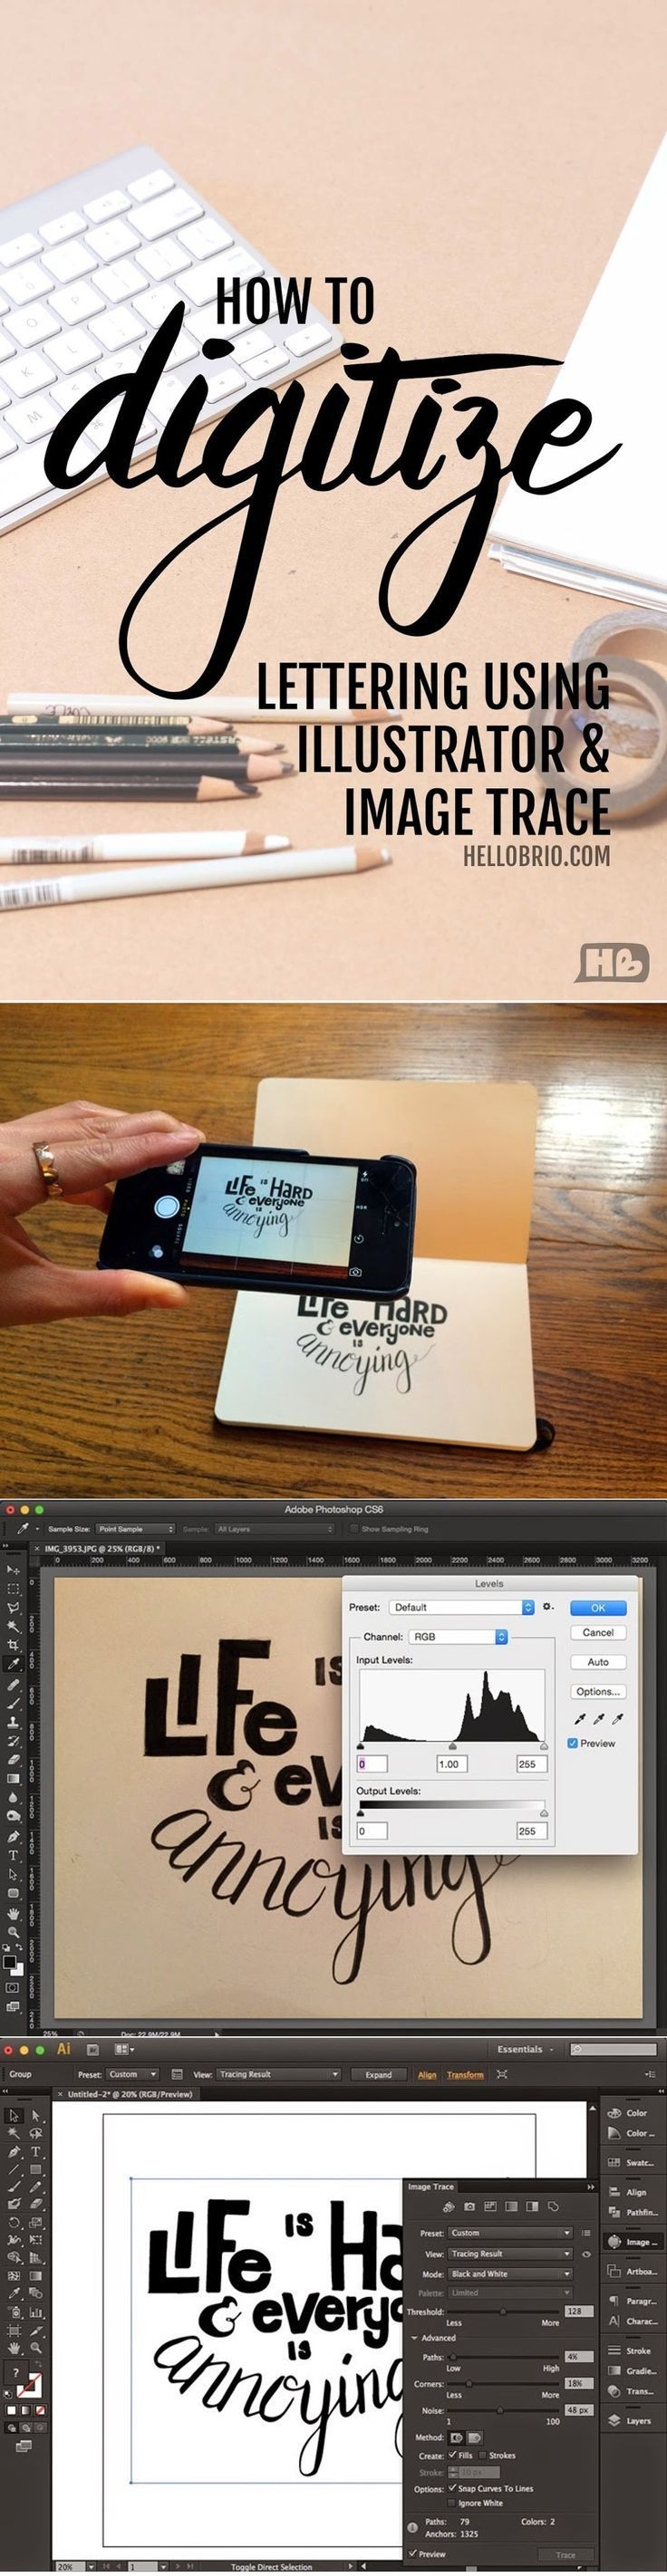 :::: ✿⊱╮☼ ☾ PINTEREST.COM christiancross ☀️❤️•♥️•* :::: how to digitize your hand lettering using illustrator's image trace.